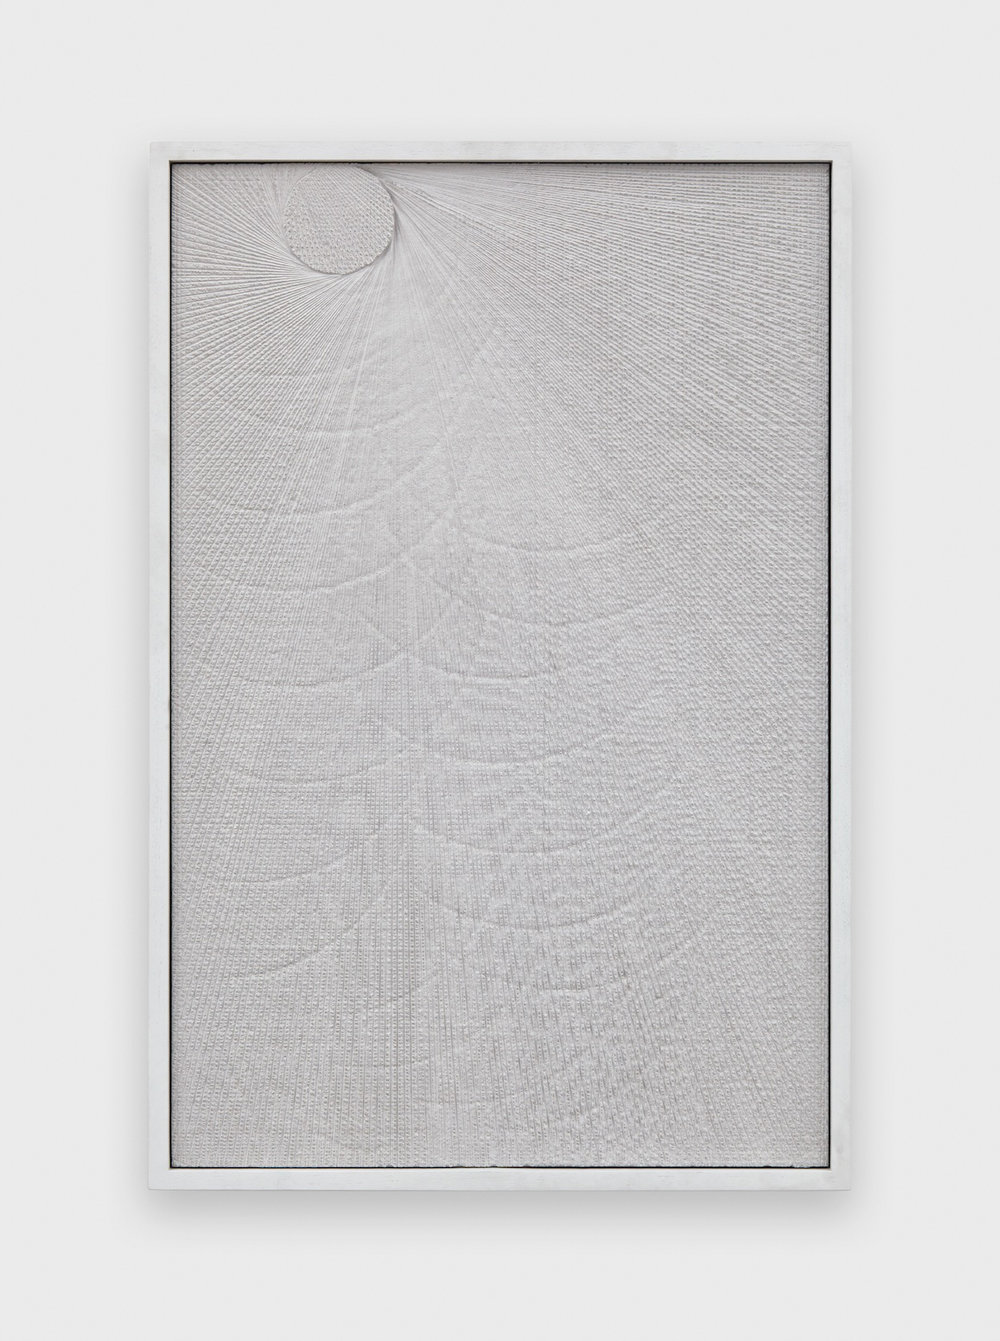 Anthony Pearson  Untitled (Etched Plaster)  2015 Pigmented hydrocal in lacquer painted walnut frame 30 ½h x 20 ½w x 2 ¼d in AP370